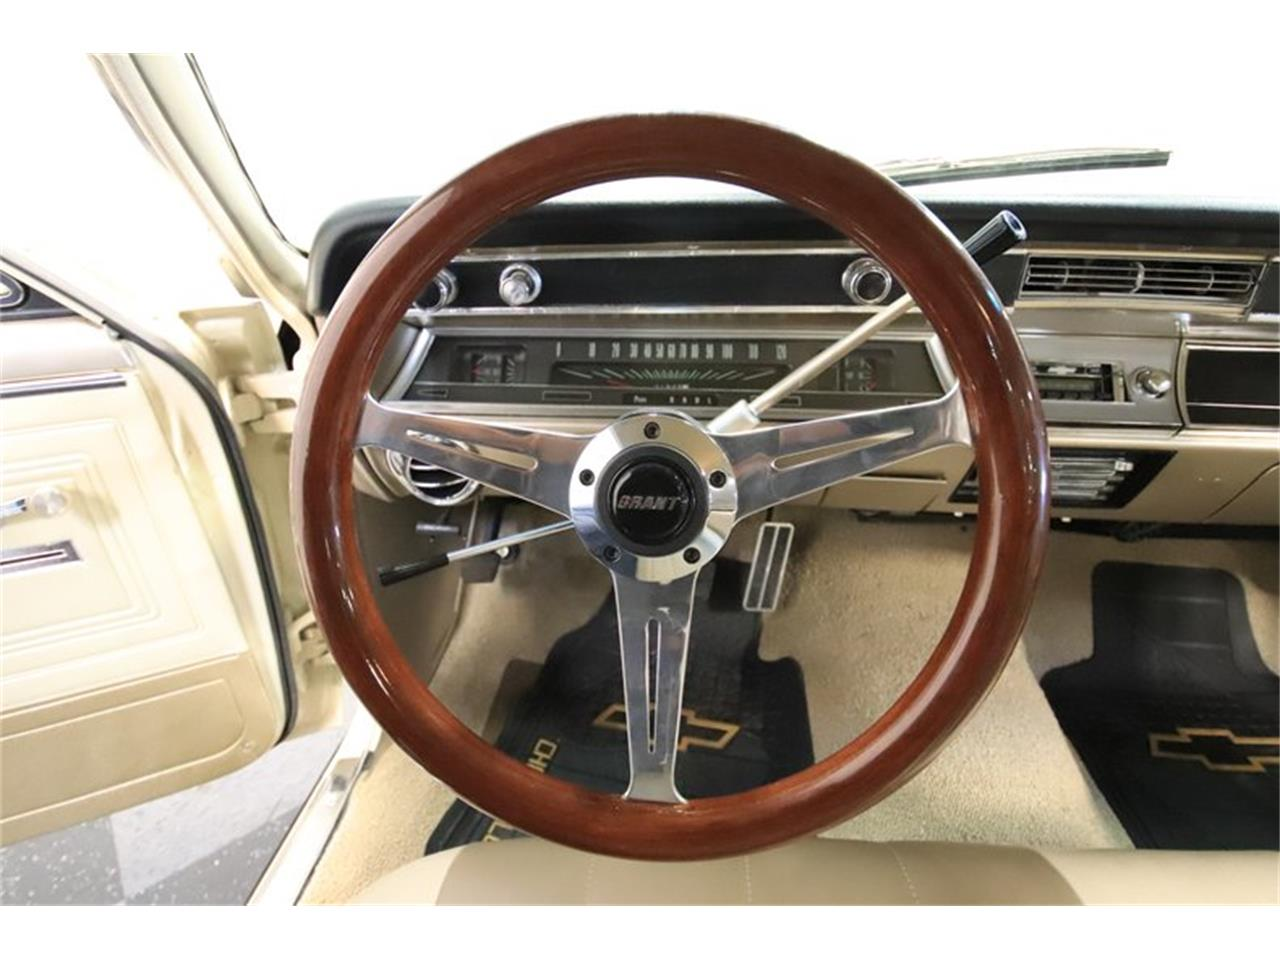 Large Picture of 1966 El Camino located in Arizona - $23,995.00 Offered by Streetside Classics - Phoenix - QAWZ